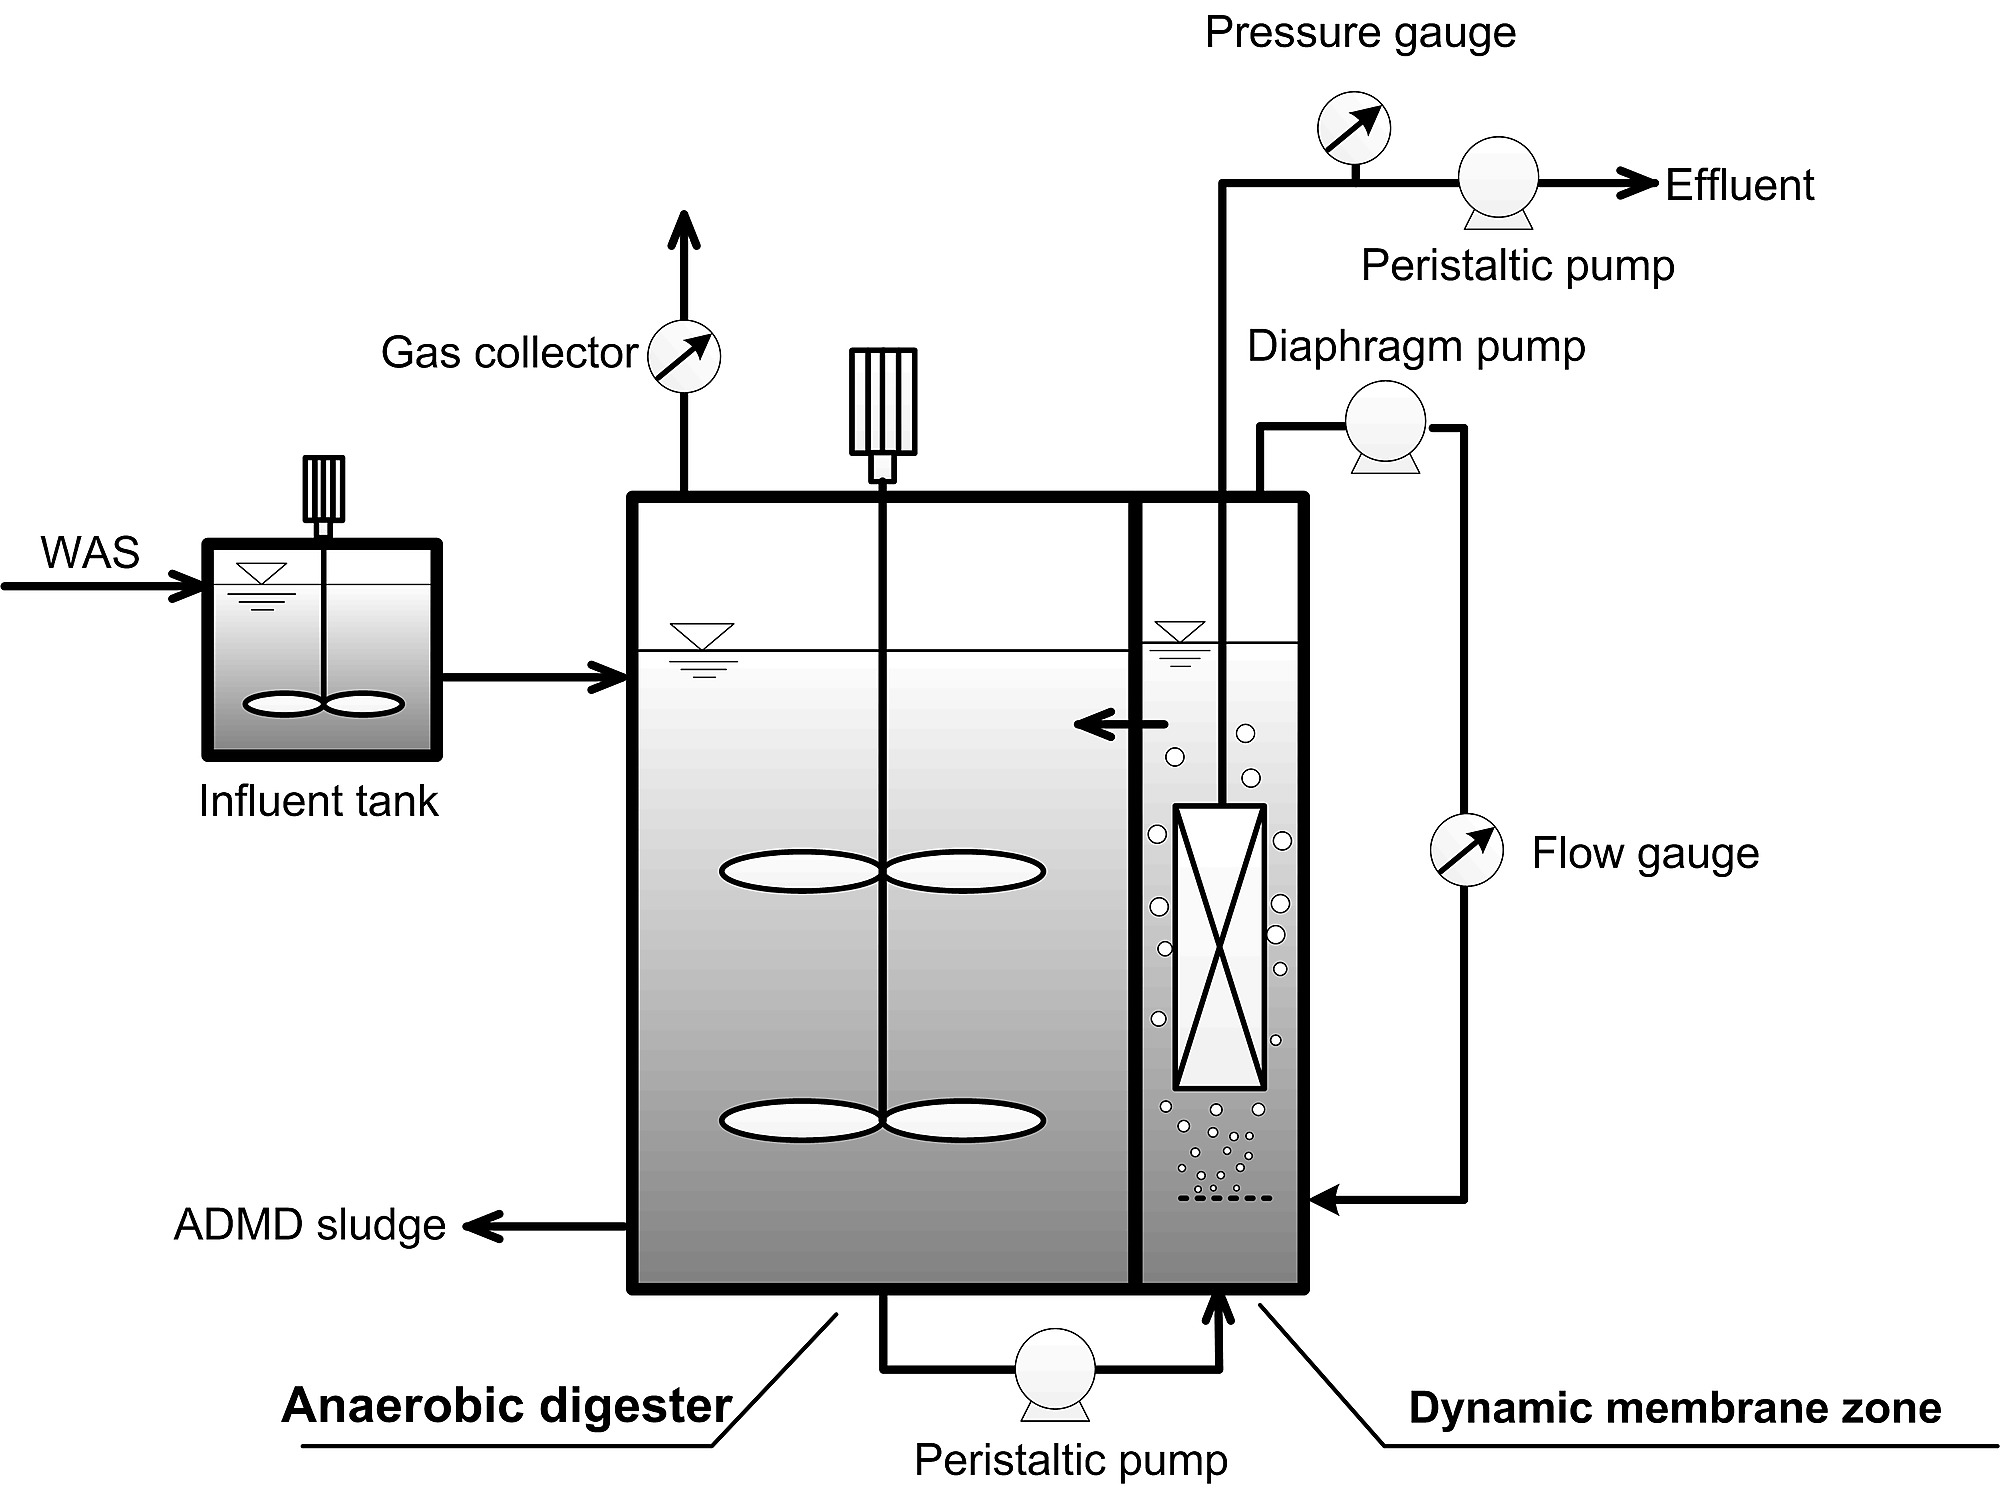 Start up of an anaerobic dynamic membrane digester for waste figure s1 schematic of admd system pooptronica Images